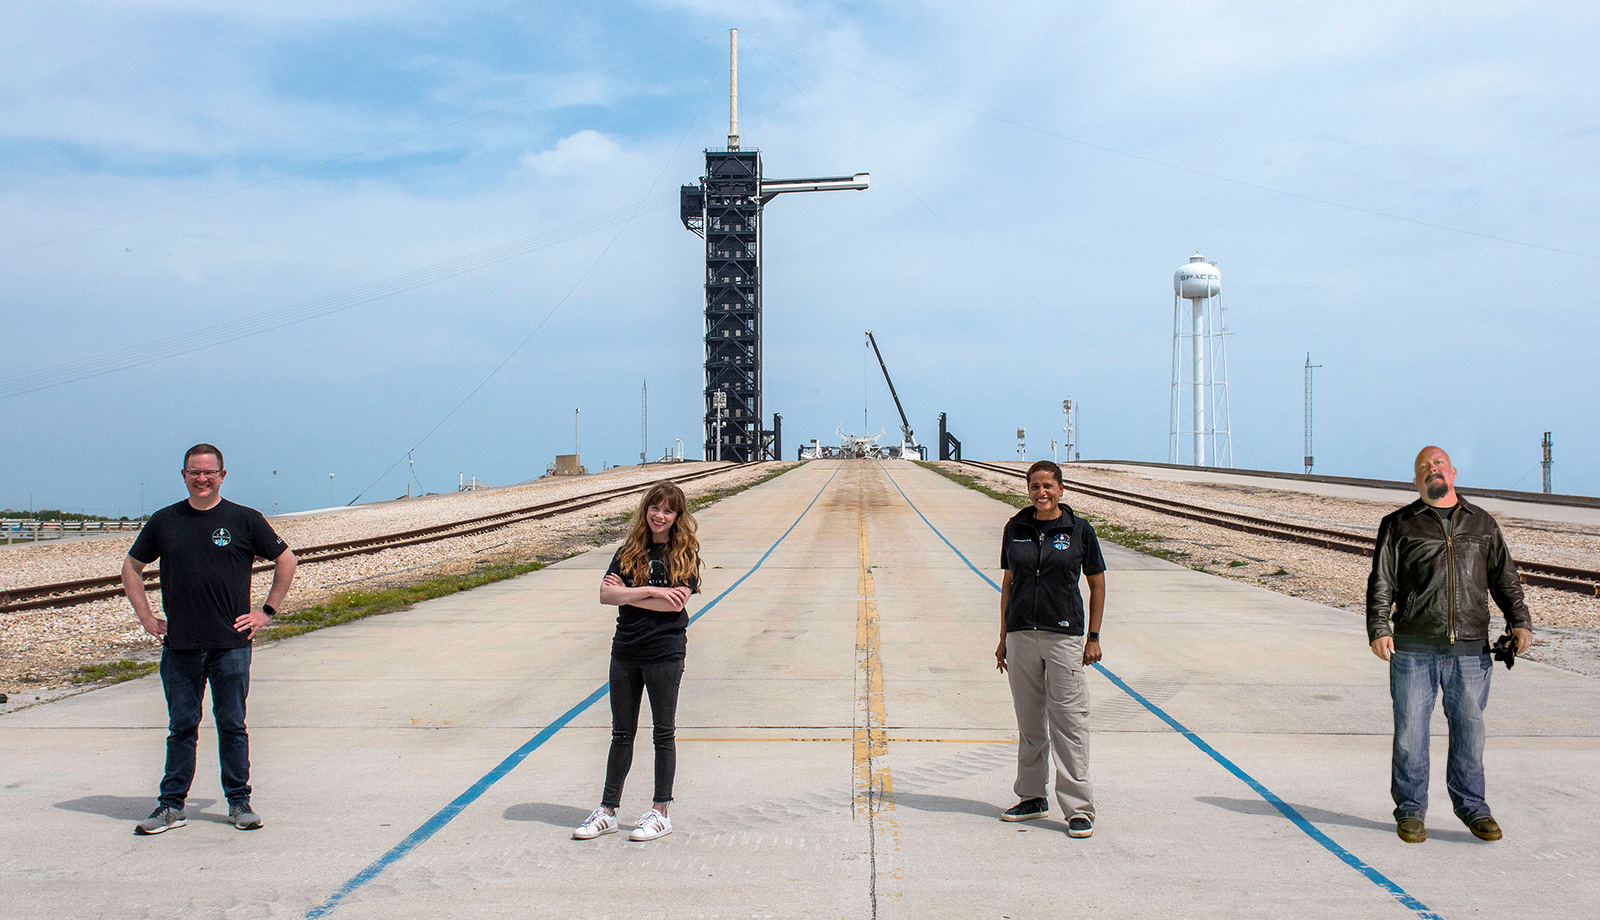 Brock Davidson to Fly on SpaceX Rocket